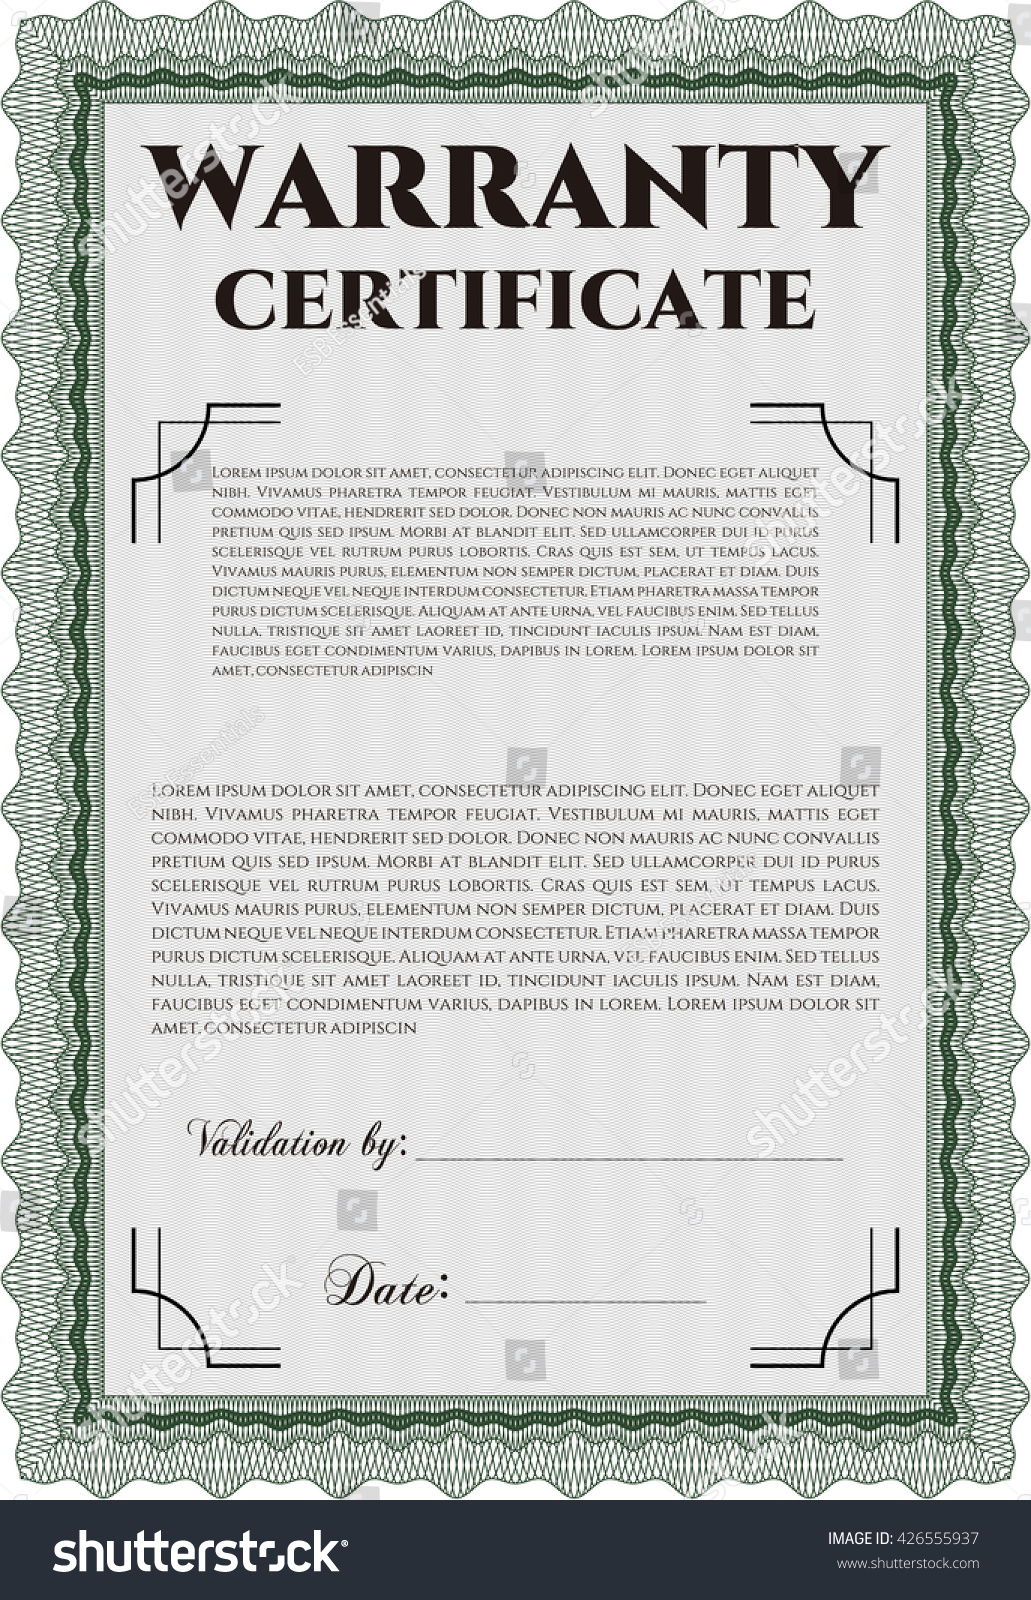 Certificate template vector free download image collections warranty certificate template free download image collections magnificent free stock certificate template pictures inspiration warranty certificate alramifo Gallery